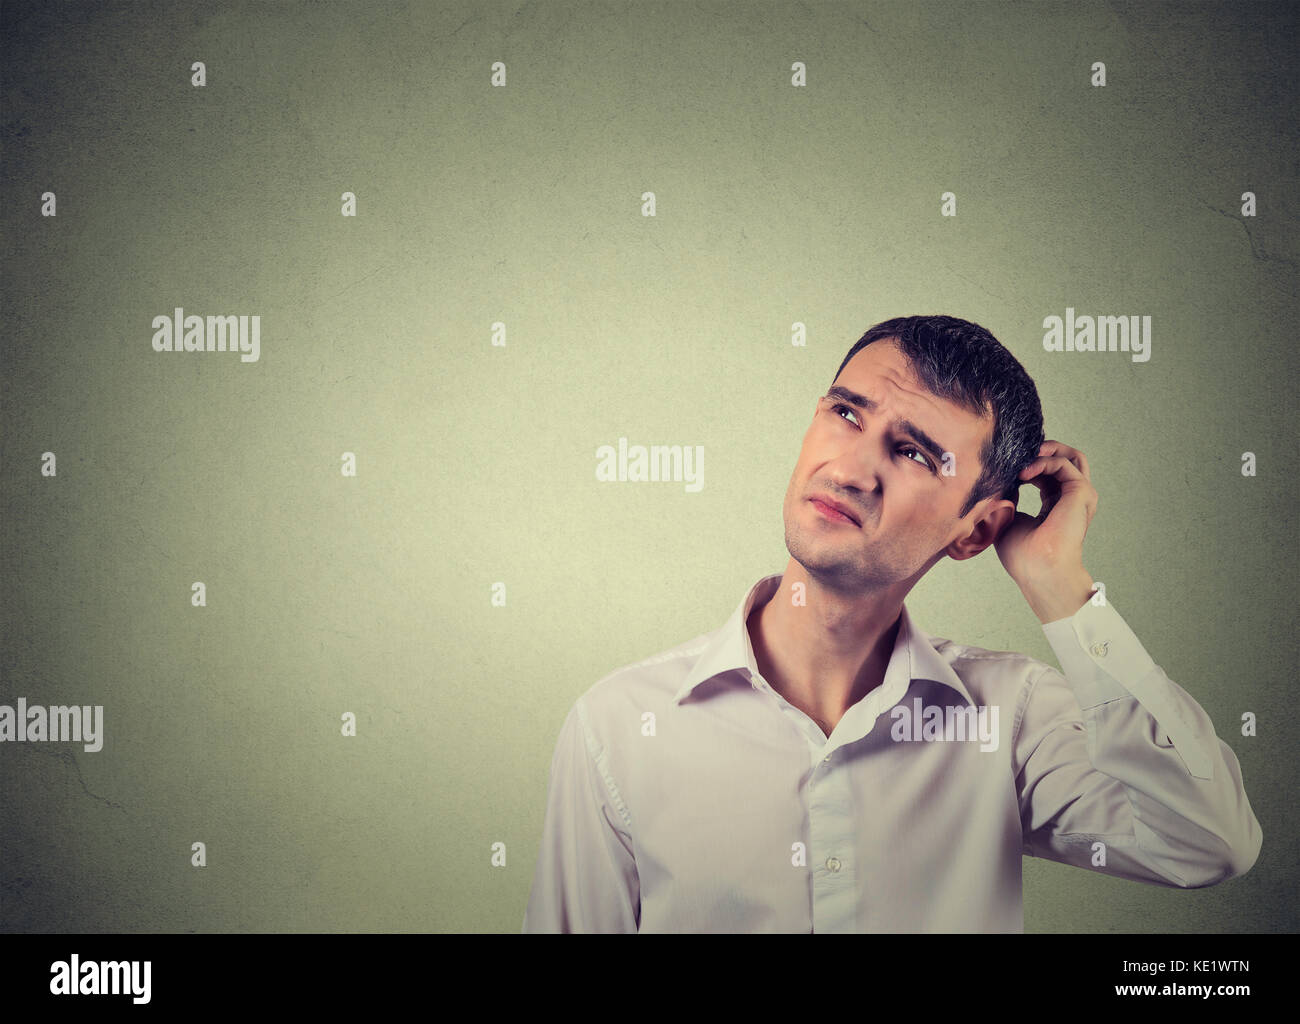 Closeup portrait man scratching head, thinking deeply about something, looking up, isolated on grey wall background. - Stock Image